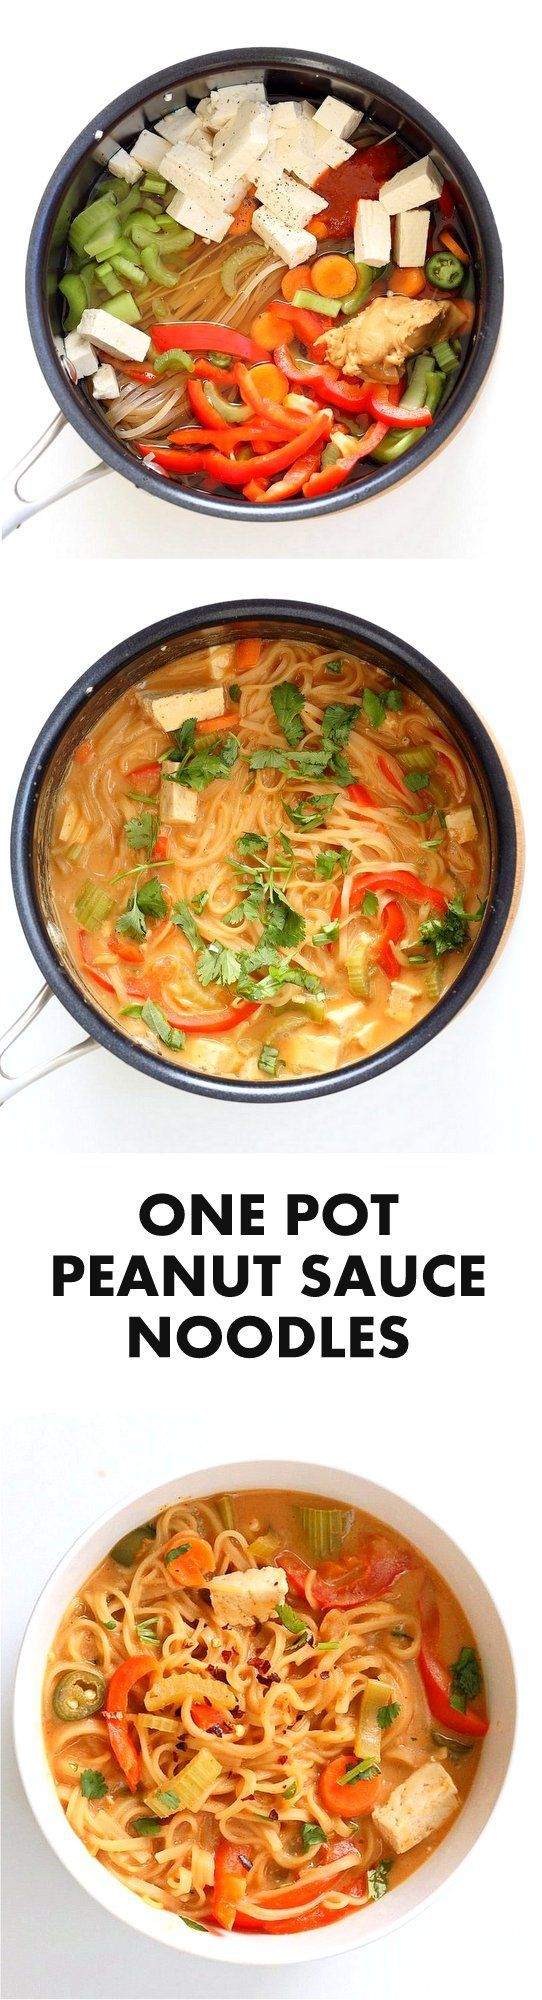 One pot Peanut Sauce Noodles, Ready in 20 minutes! Brown Rice Noodles, Veggies, Peanut or Almond Butter, spices, flavors, boil and done. #Easy #Quick #Weeknight #Dinner #Recipe | VeganRicha.com